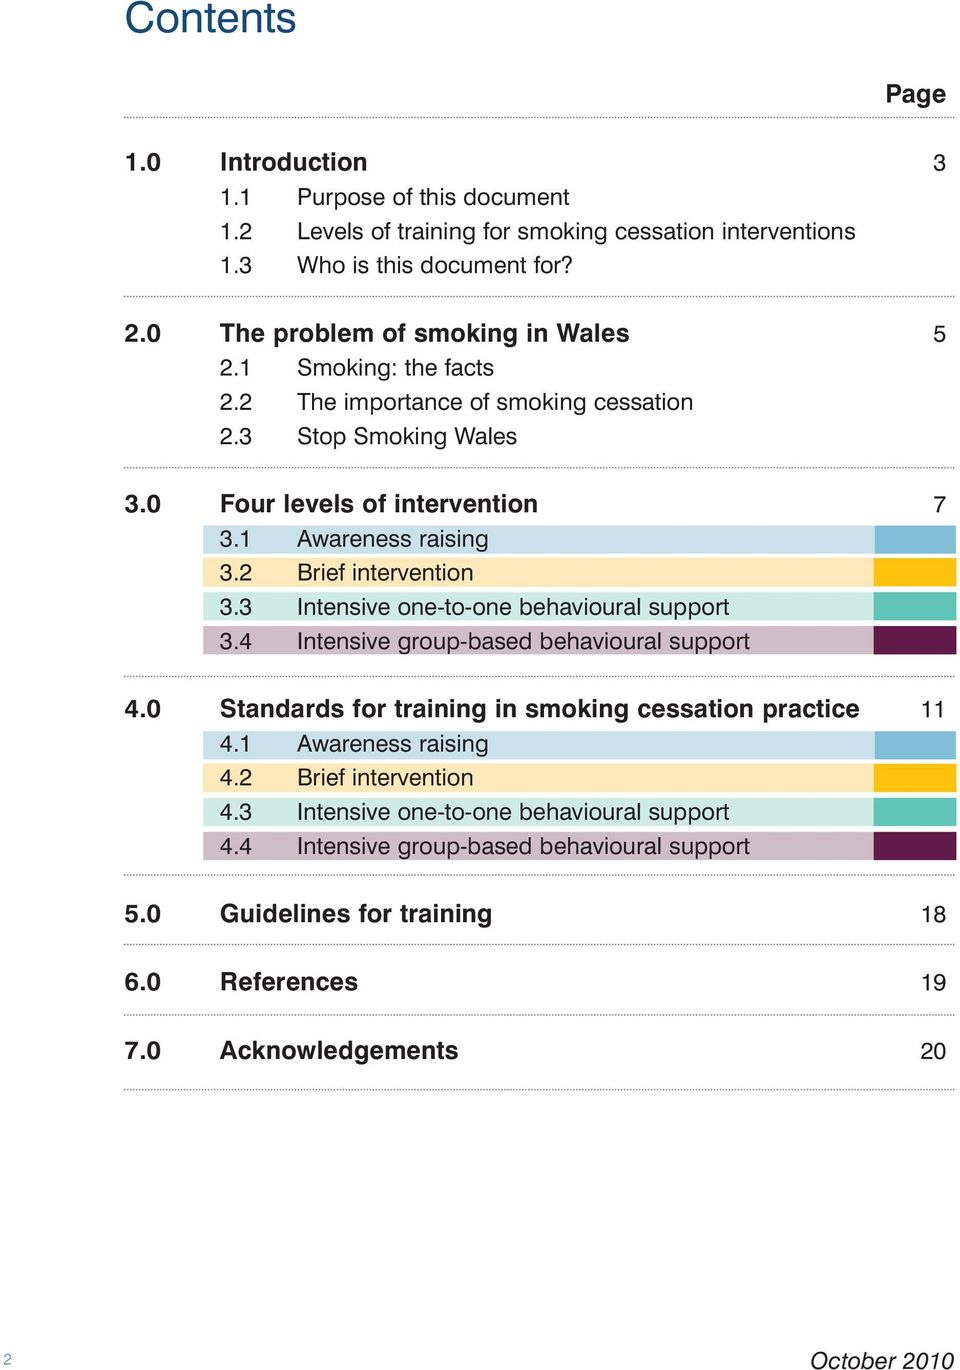 2 Brief intervention 3.3 Intensive one-to-one behavioural support 3.4 Intensive group-based behavioural support 4.0 Standards for training in smoking cessation practice 11 4.